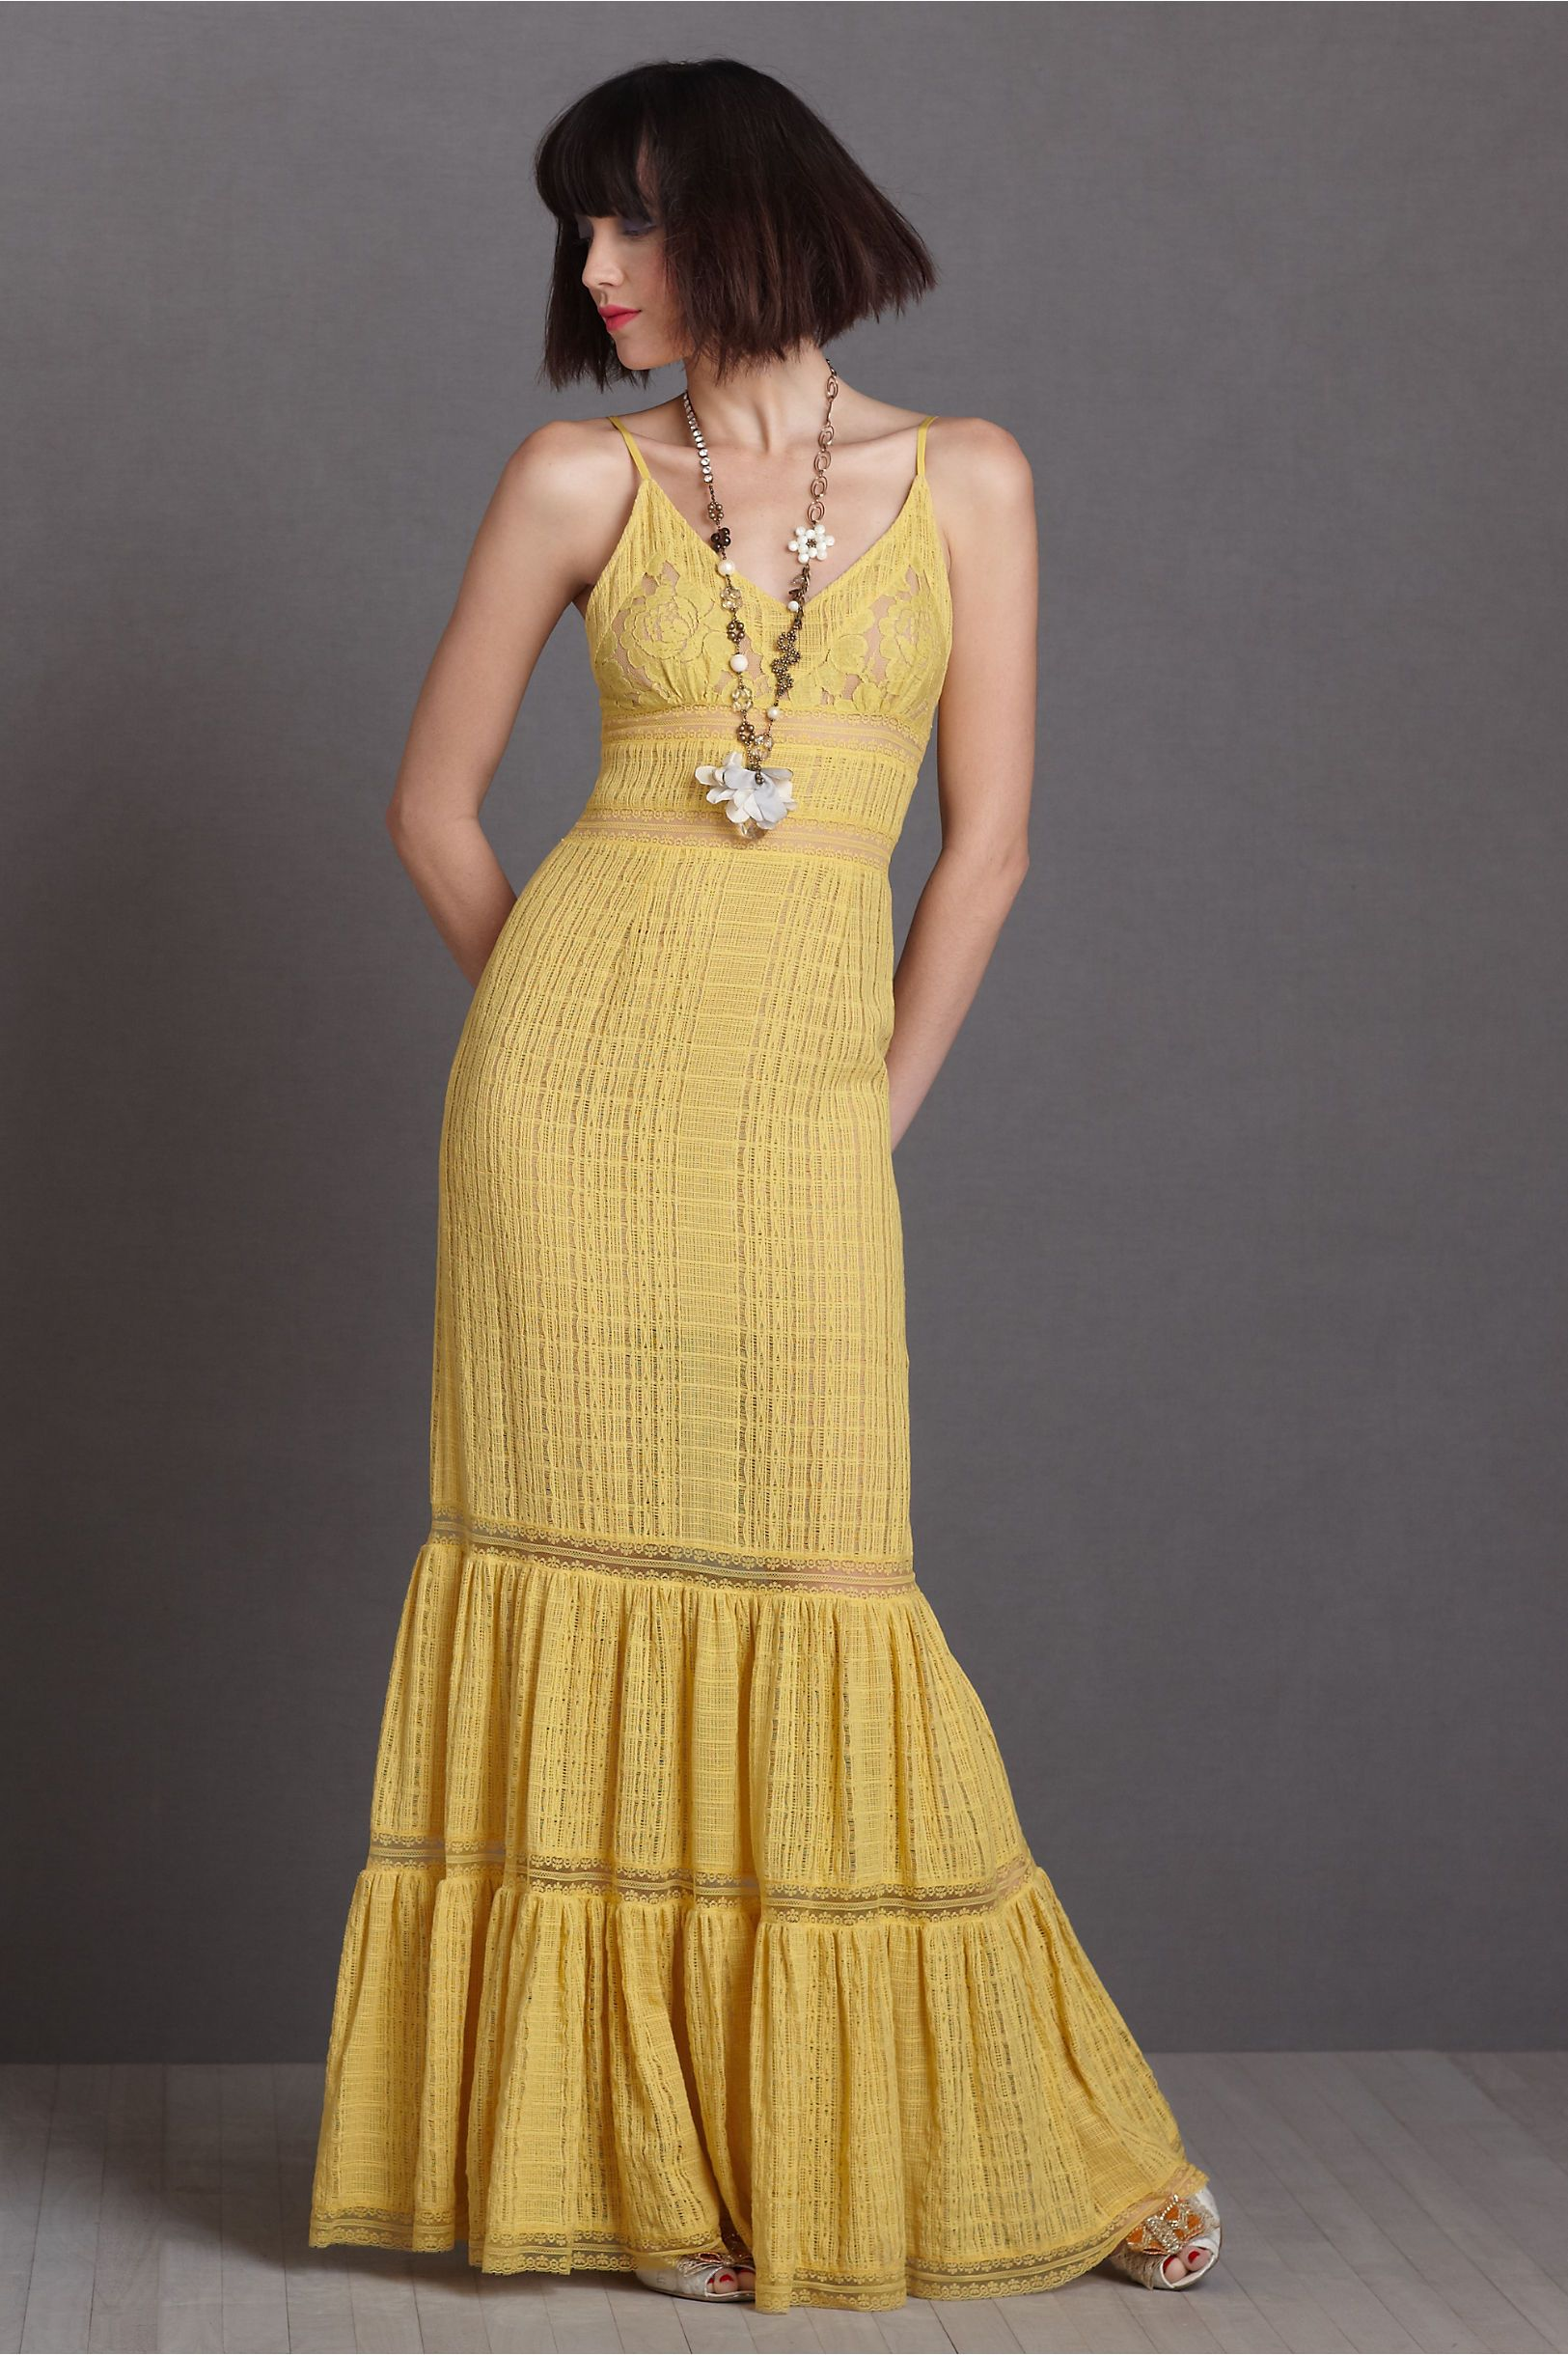 Yellow dress wedding guest  Spicy Ginger Dress in SHOP Bridesmaids u Partygoers Dresses at BHLDN